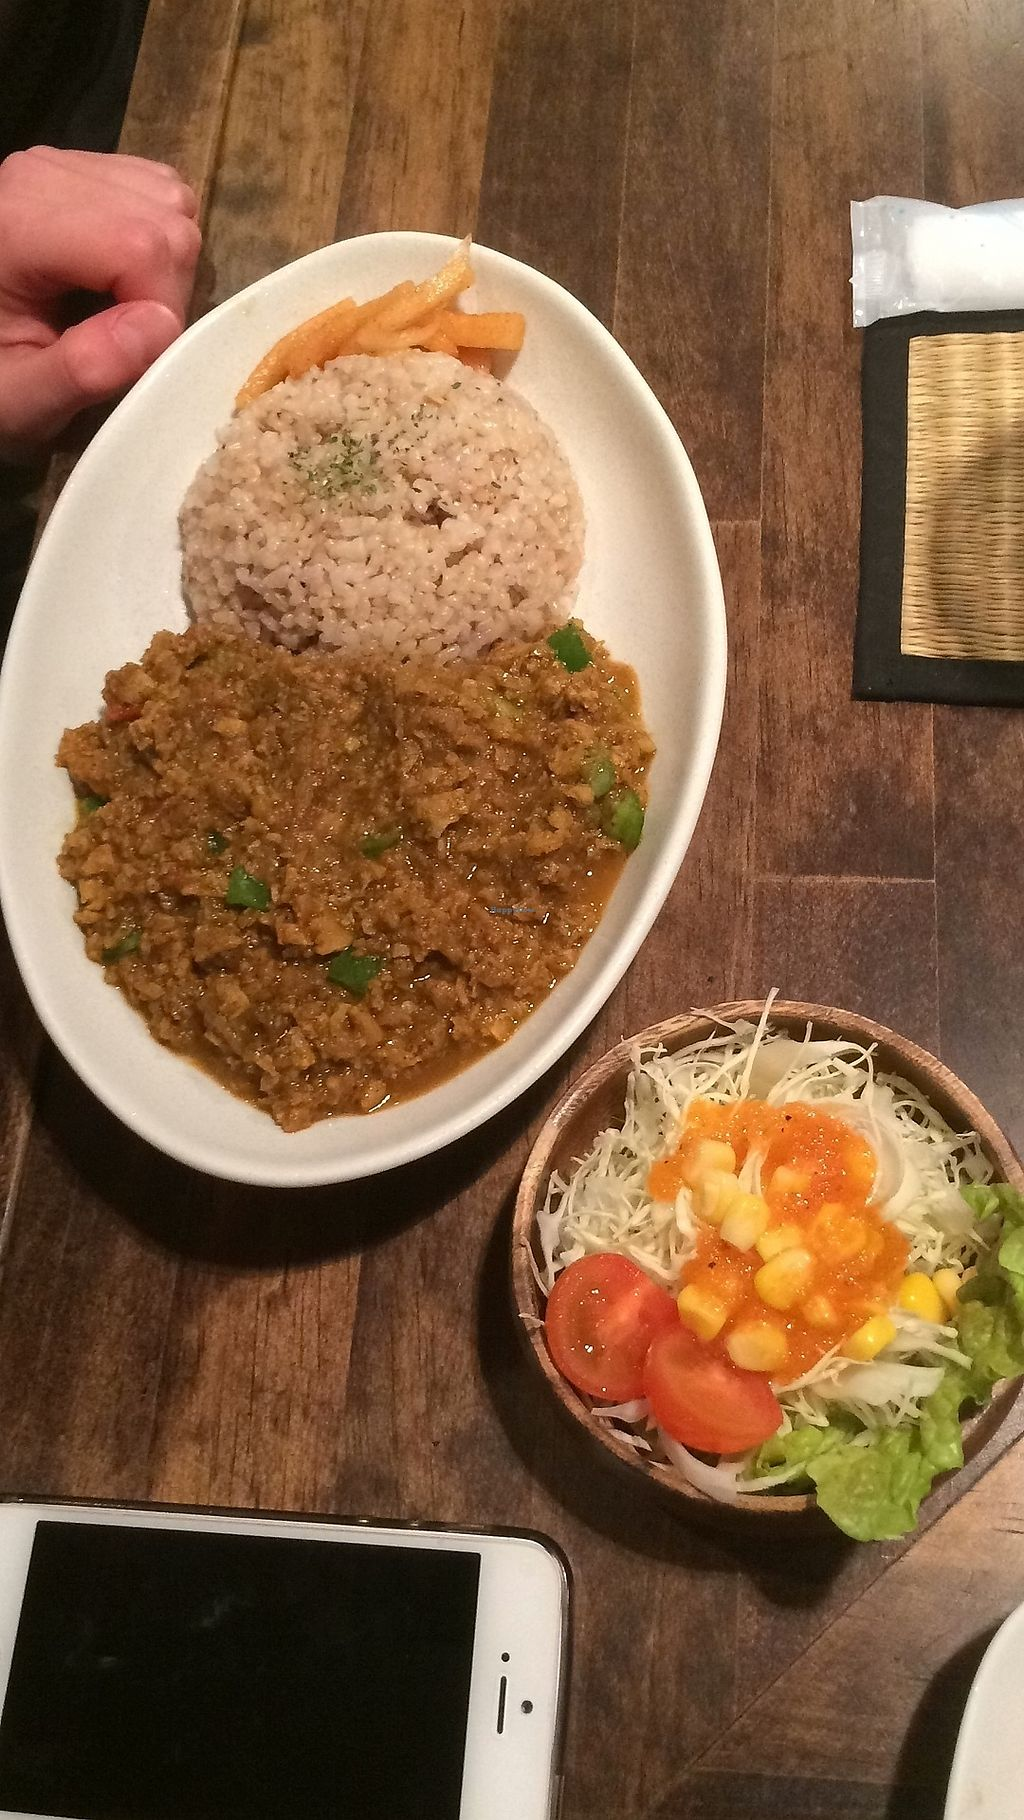 """Photo of VegReca  by <a href=""""/members/profile/Hans"""">Hans</a> <br/>Curry indian style <br/> February 18, 2018  - <a href='/contact/abuse/image/62110/360885'>Report</a>"""